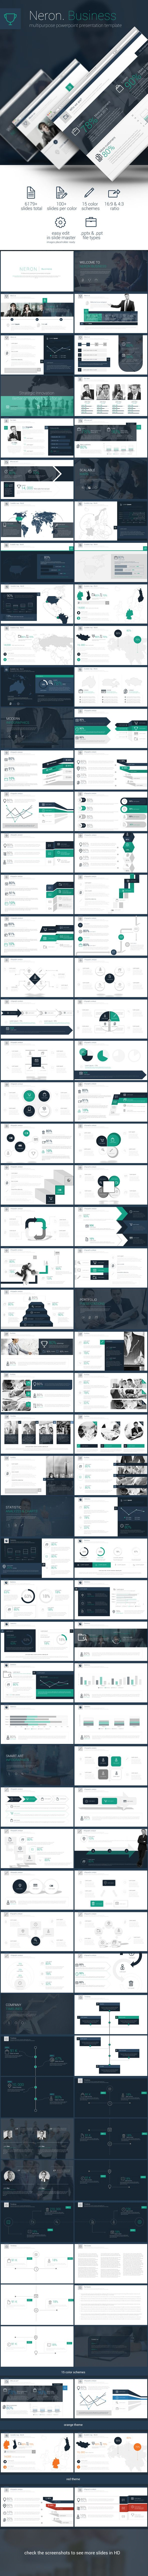 Best 25 cool powerpoint ideas on pinterest power point neron powerpoint presenatation template by creativesolutionsdesign neron is a professional powerpoint presentation with incredible design and 10 amazing toneelgroepblik Gallery